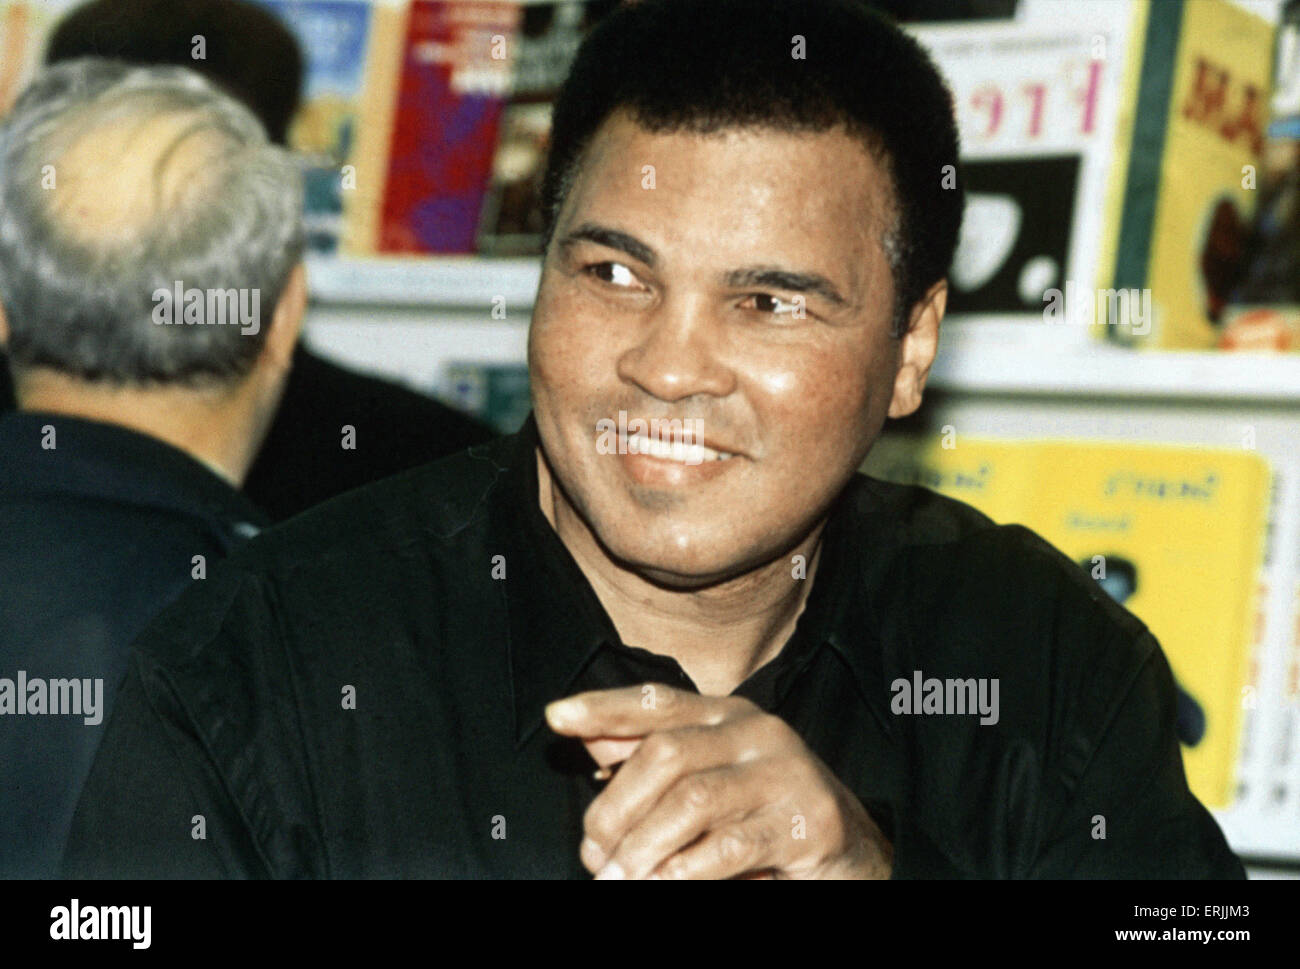 Muhammad Ali at W.H Smith's in London to promote his new book A Thirty Year Journey. 15th November 1993 - Stock Image